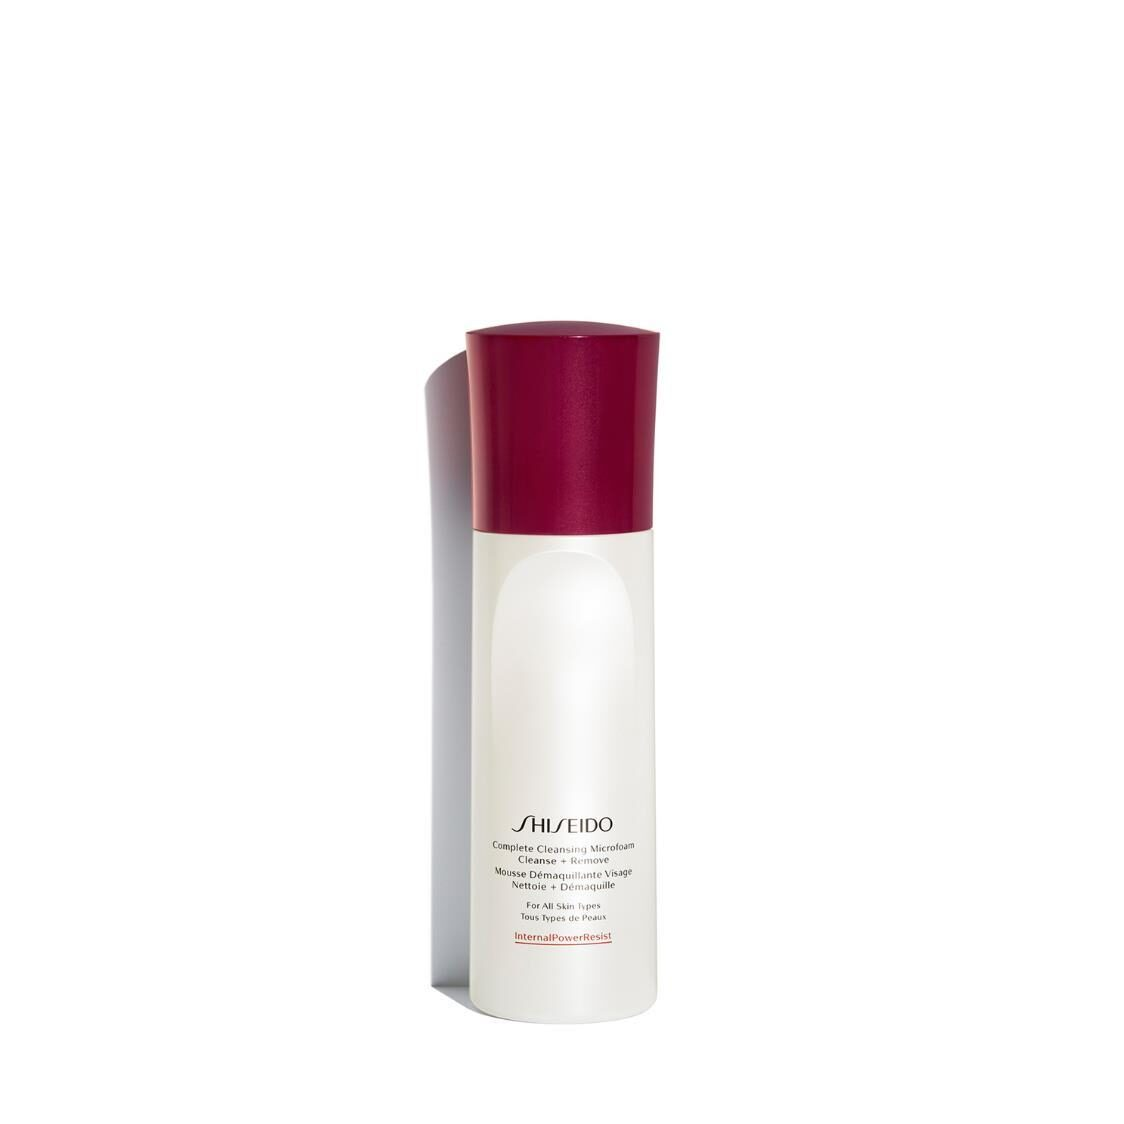 Shiseido Complete Cleansing Microfoam